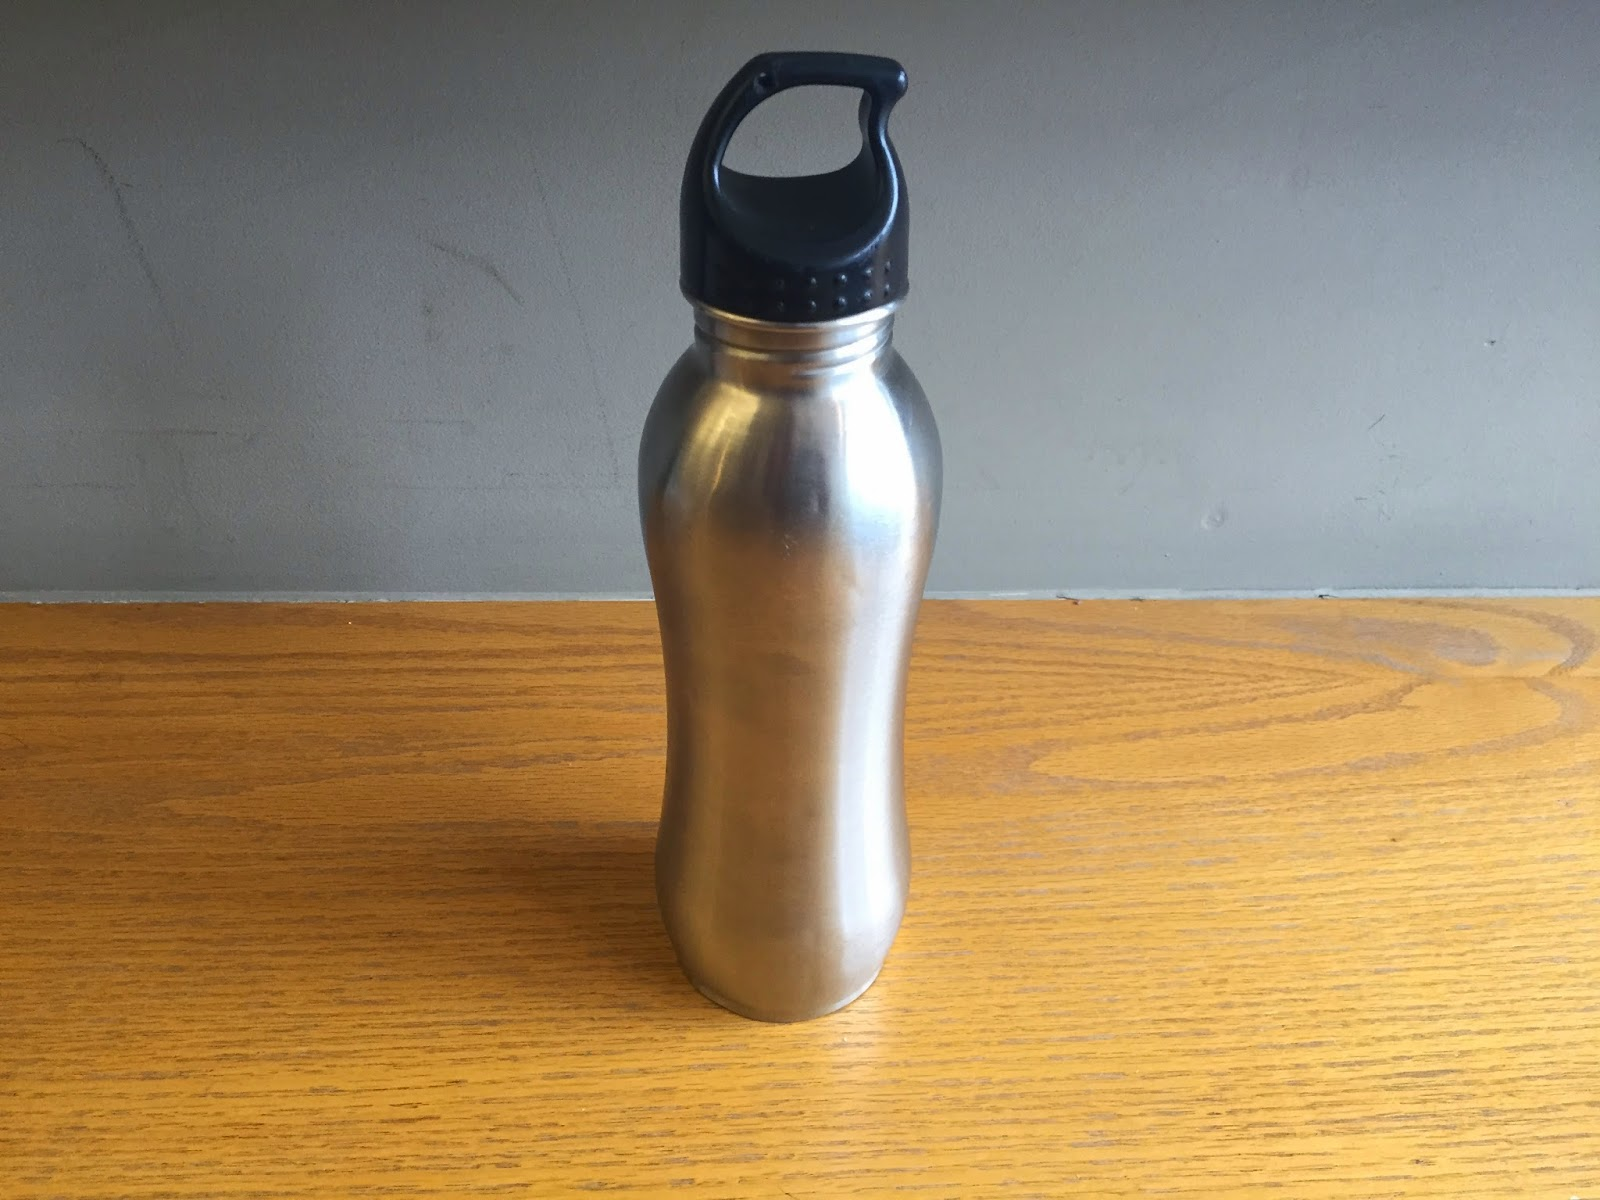 Stainless steel metal water bottle appliance recycling